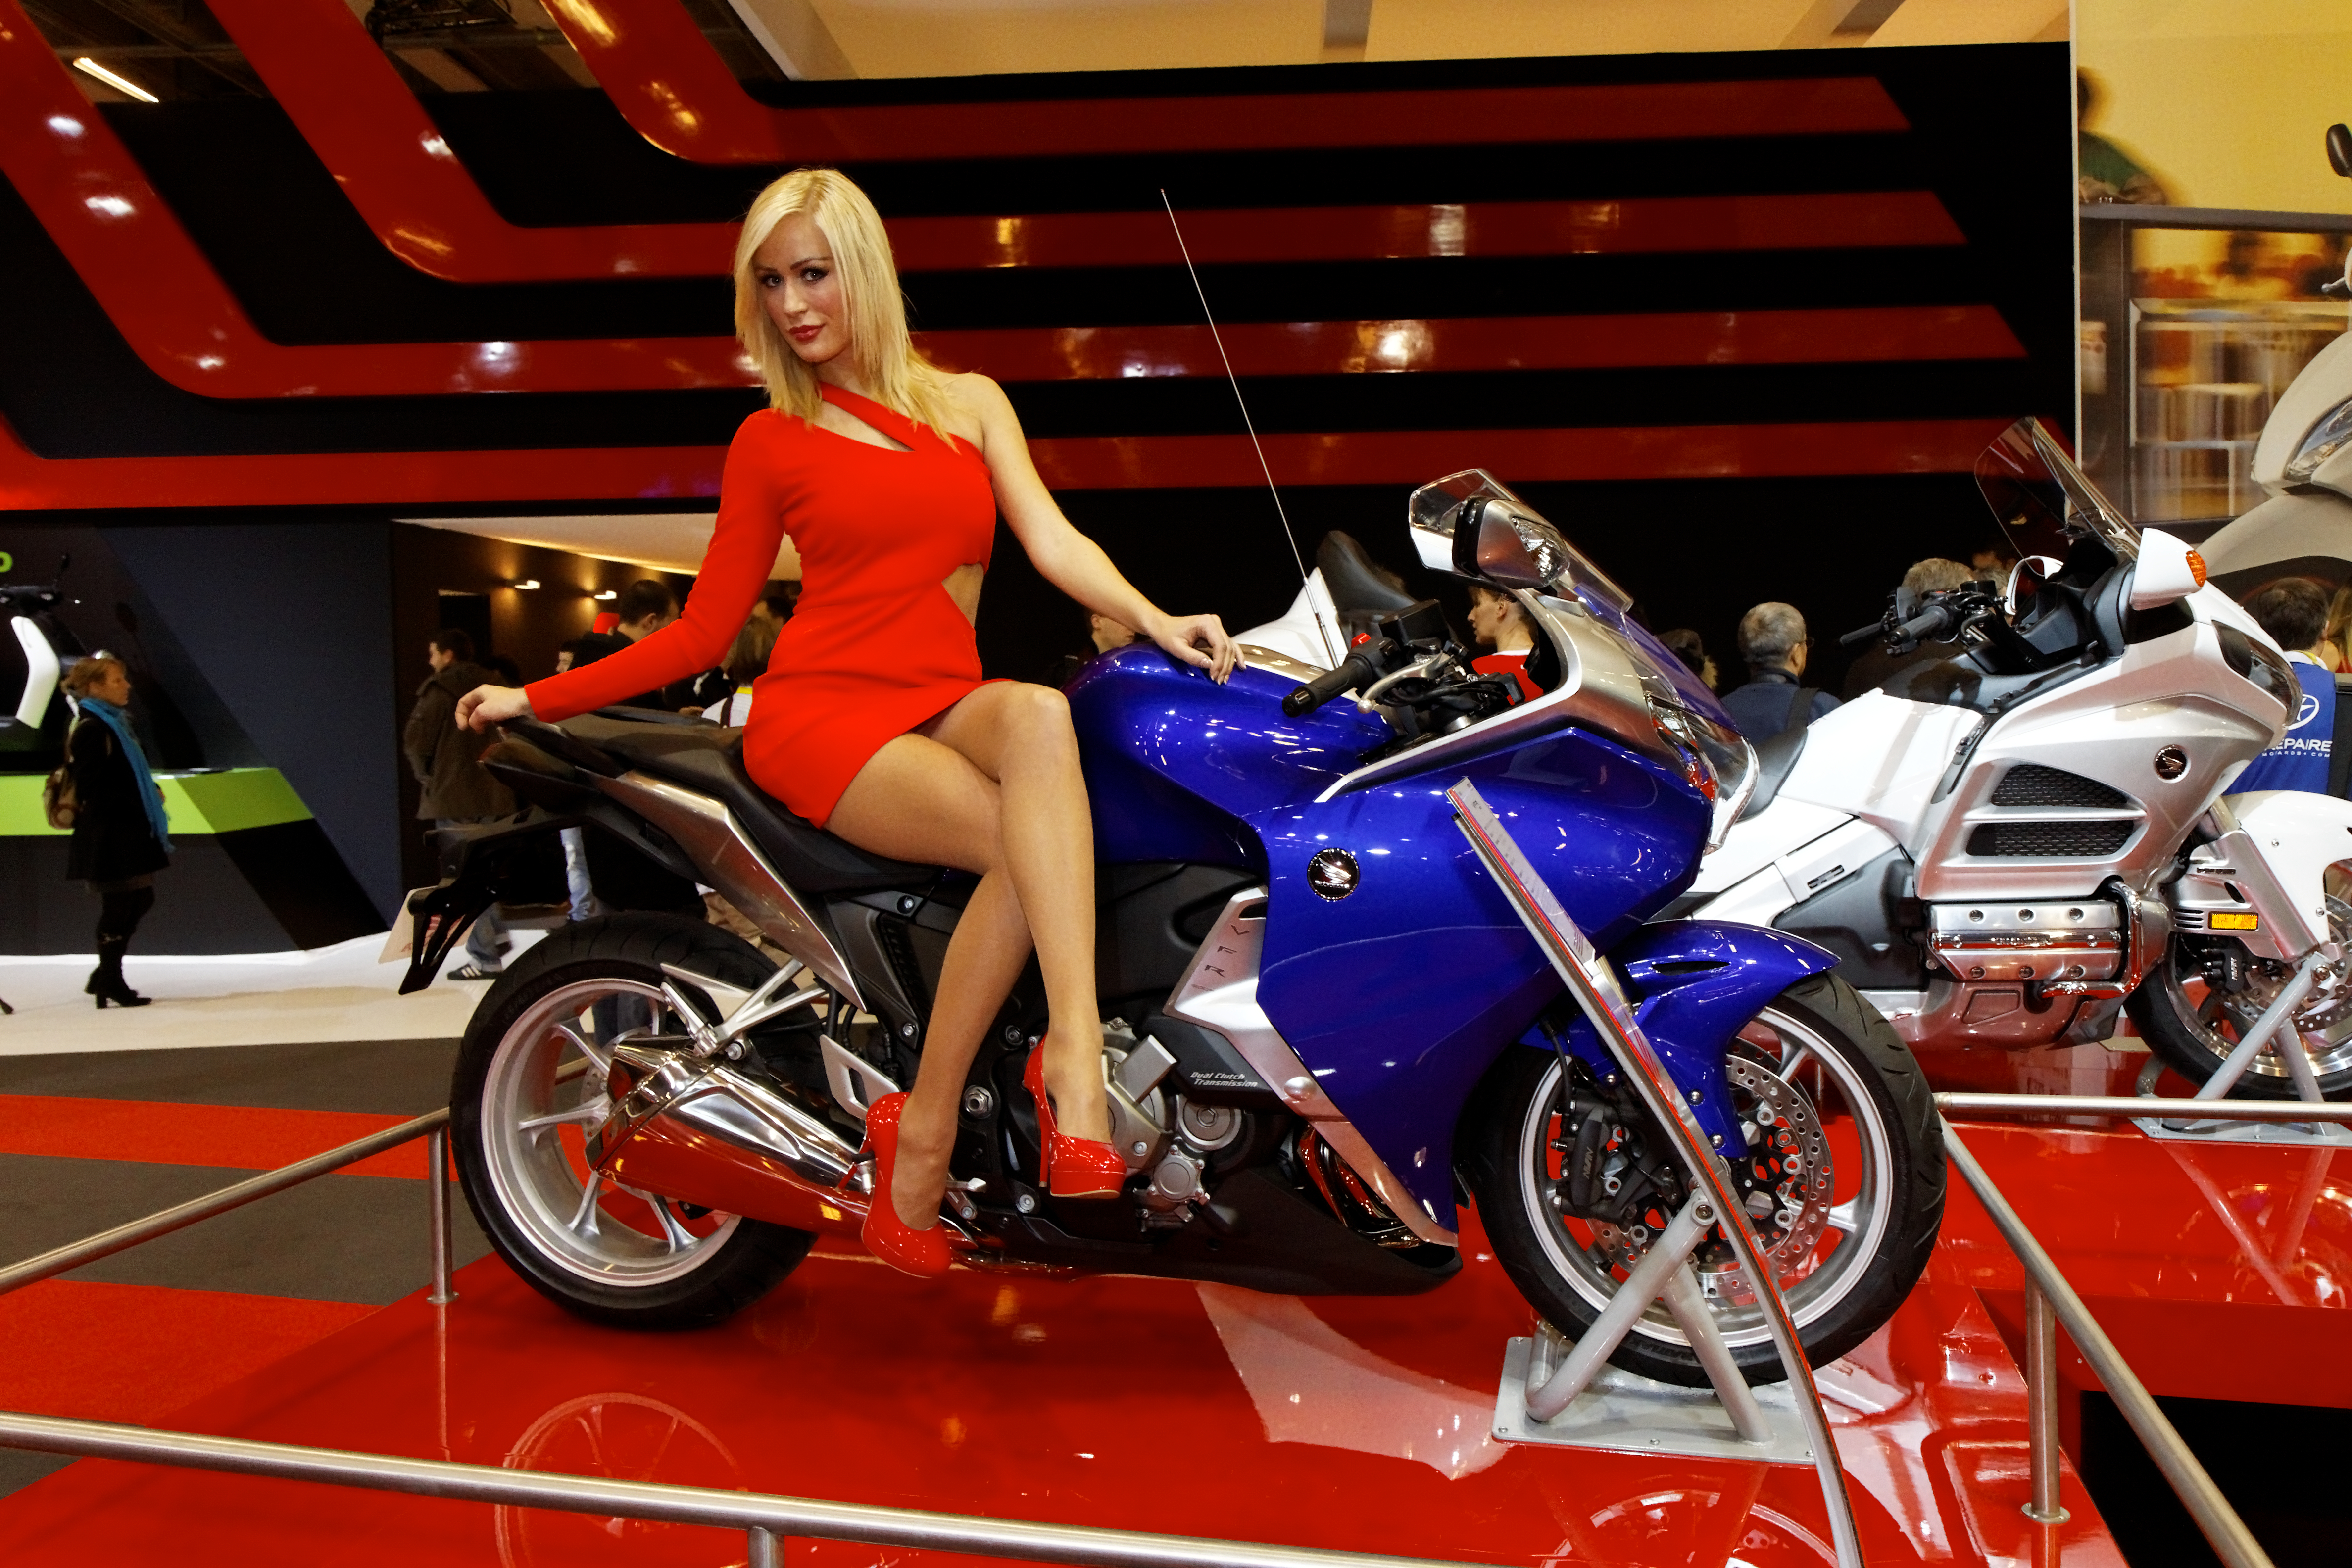 file paris salon de la moto 2011 honda vfr 1200 f wikimedia commons. Black Bedroom Furniture Sets. Home Design Ideas